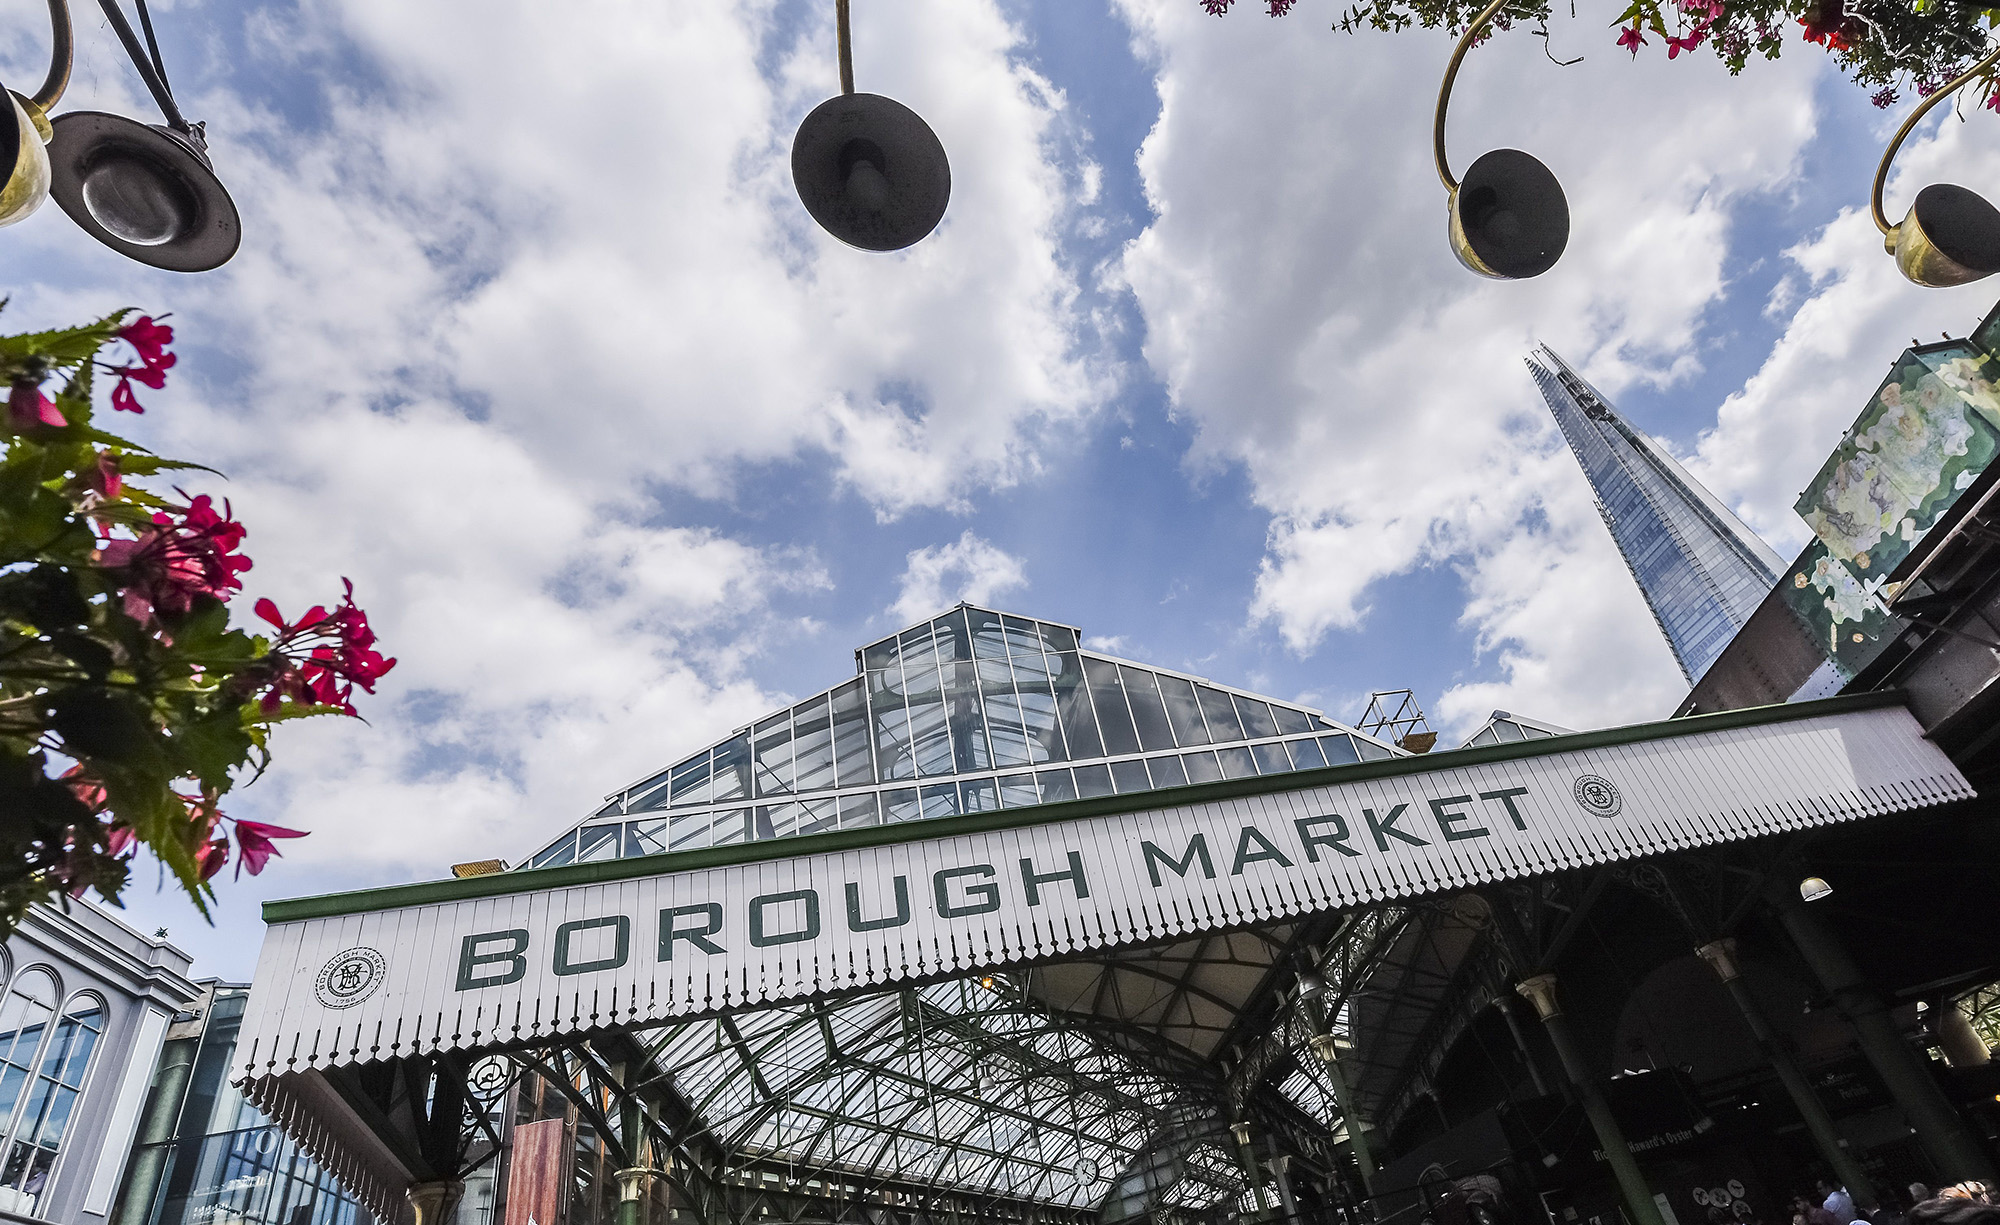 Forum on this topic: How Borough Market traders feel a month , how-borough-market-traders-feel-a-month/